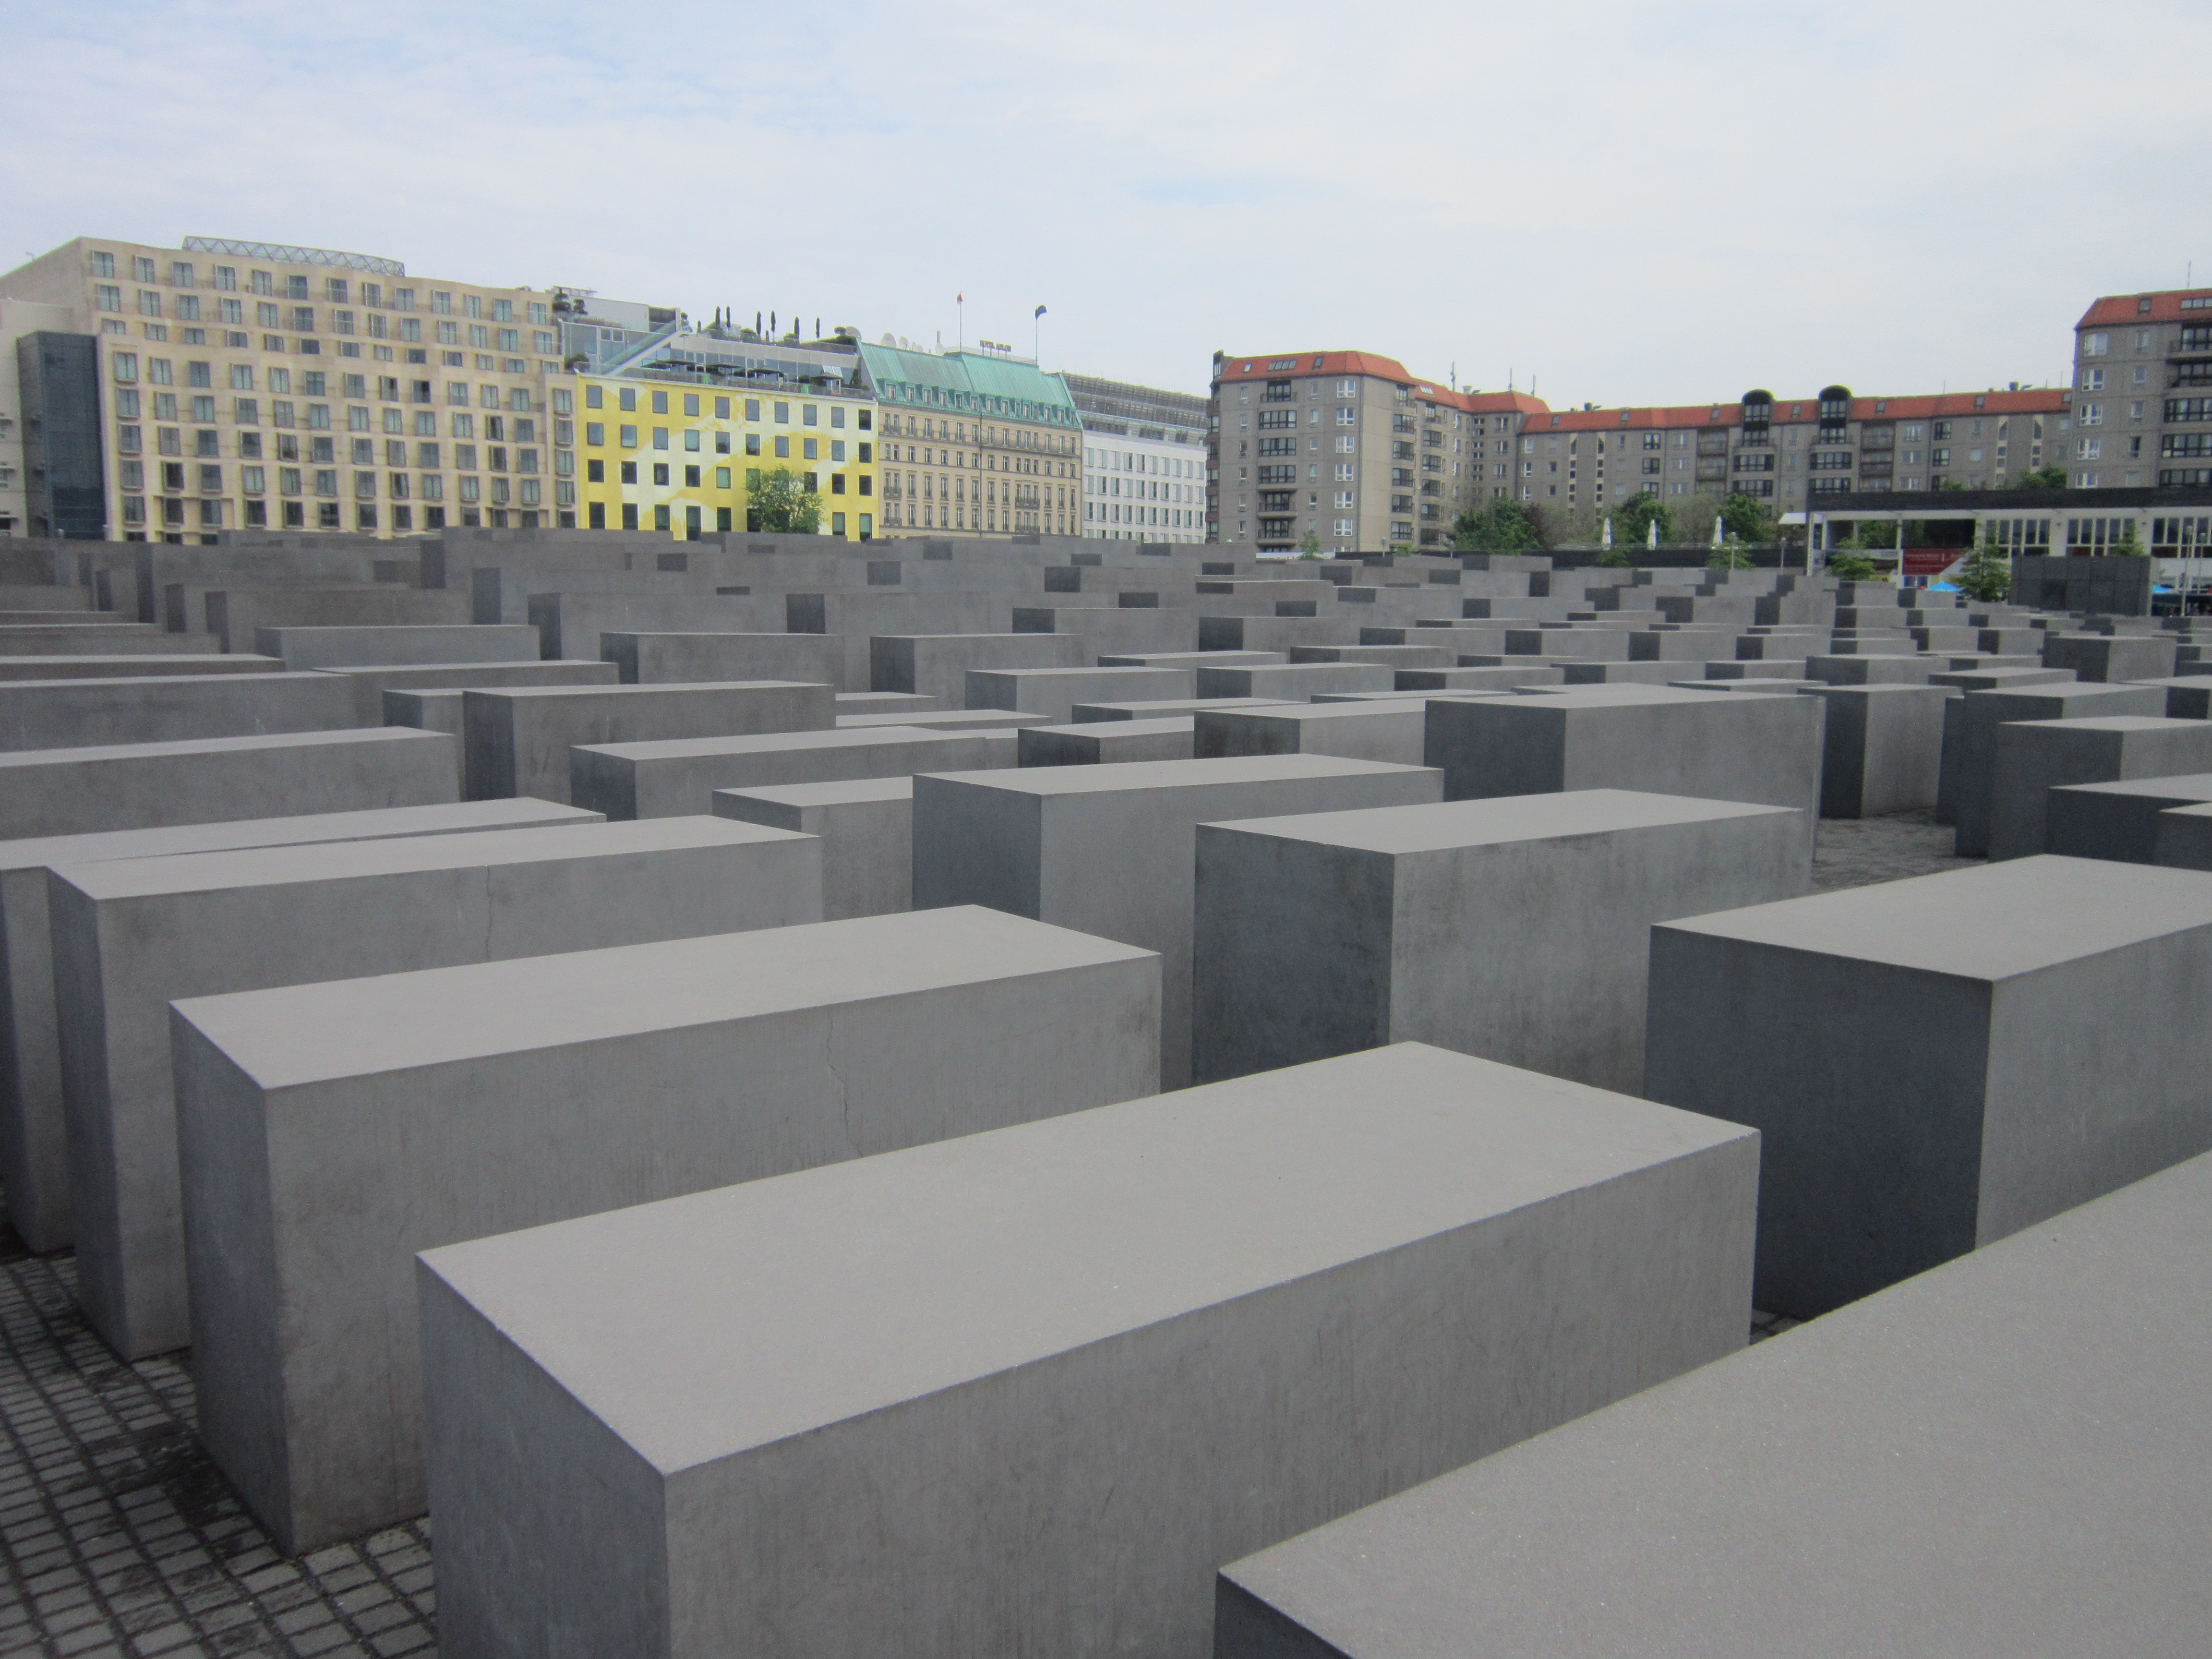 things to do in berlin - Holocaust memorial